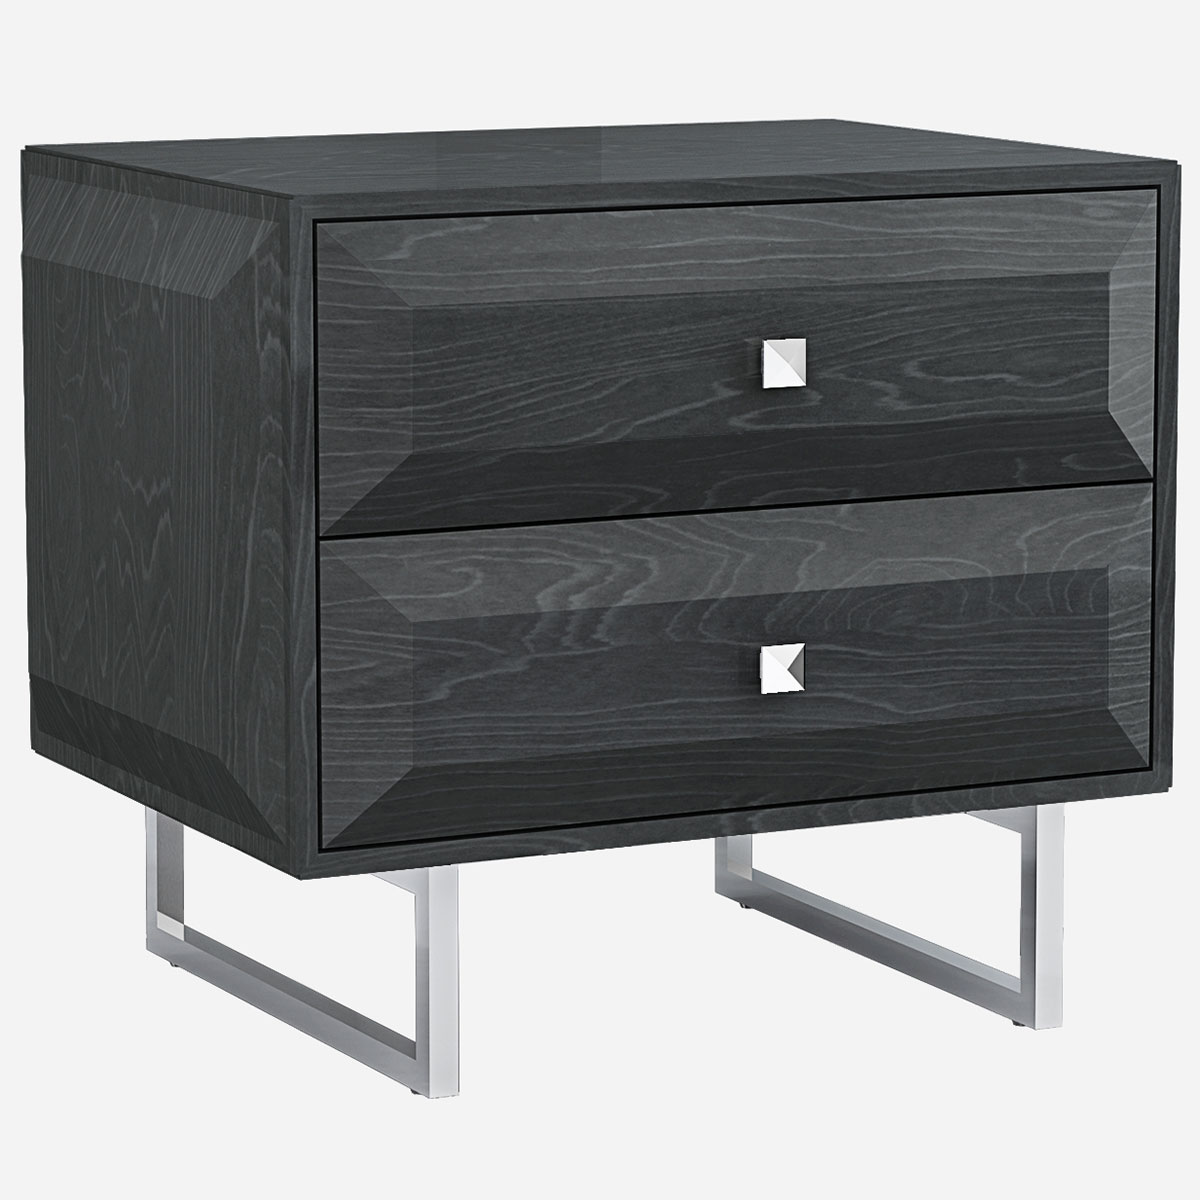 Abrazo Nightstand In High Gloss Dark Gray On Stainless Steel Base By Whiteline Imports